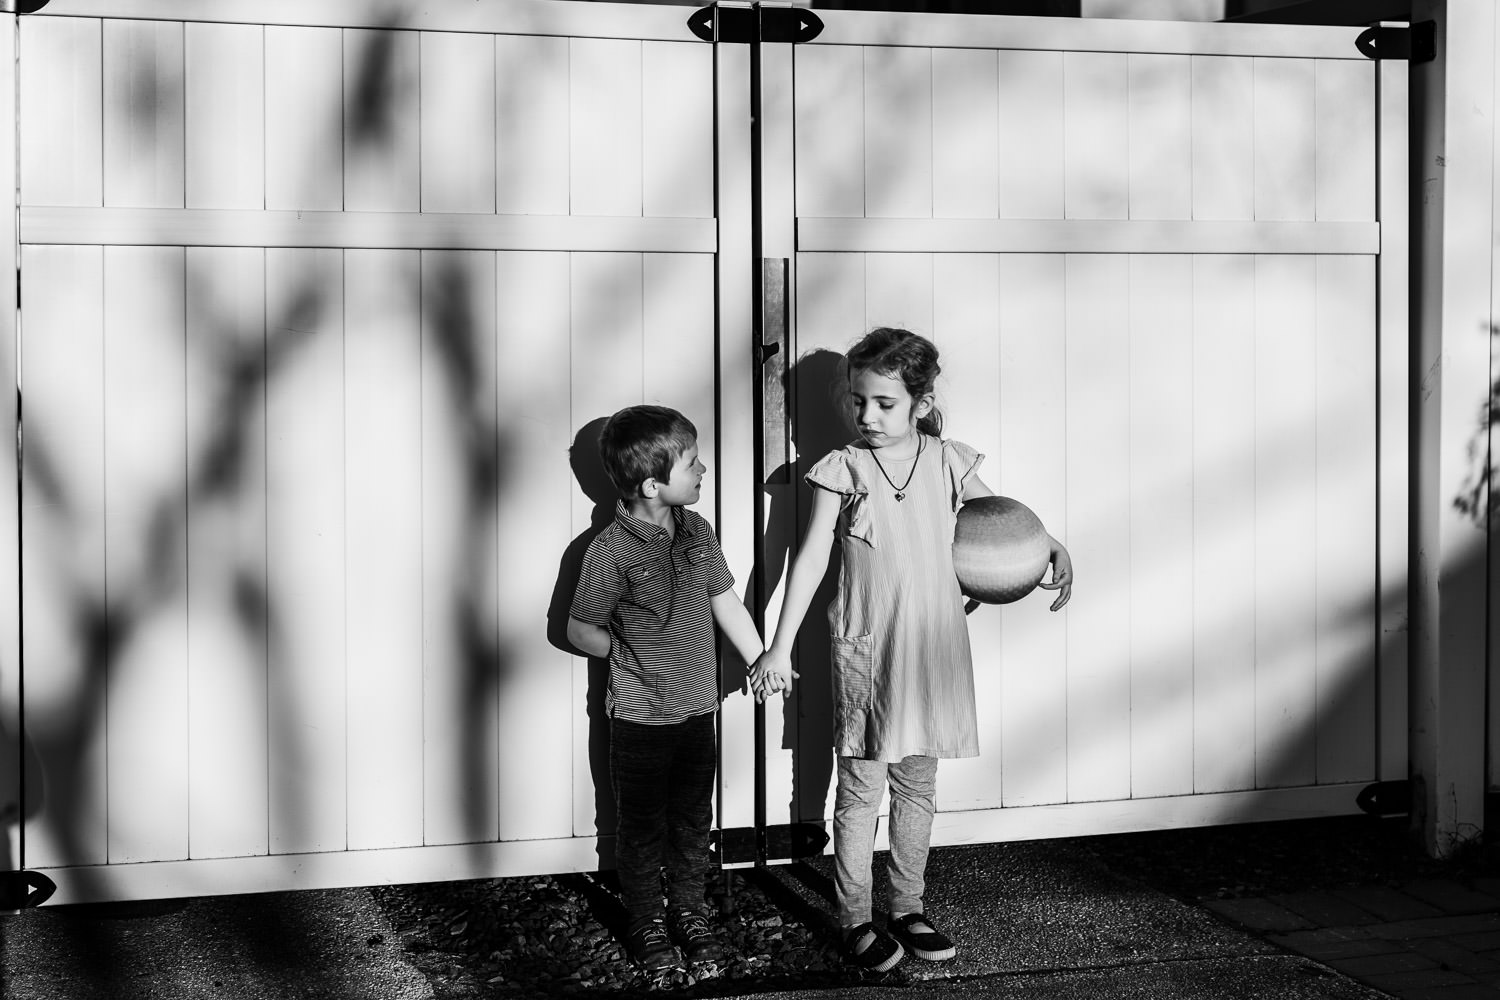 Two children hold hands in their driveway.